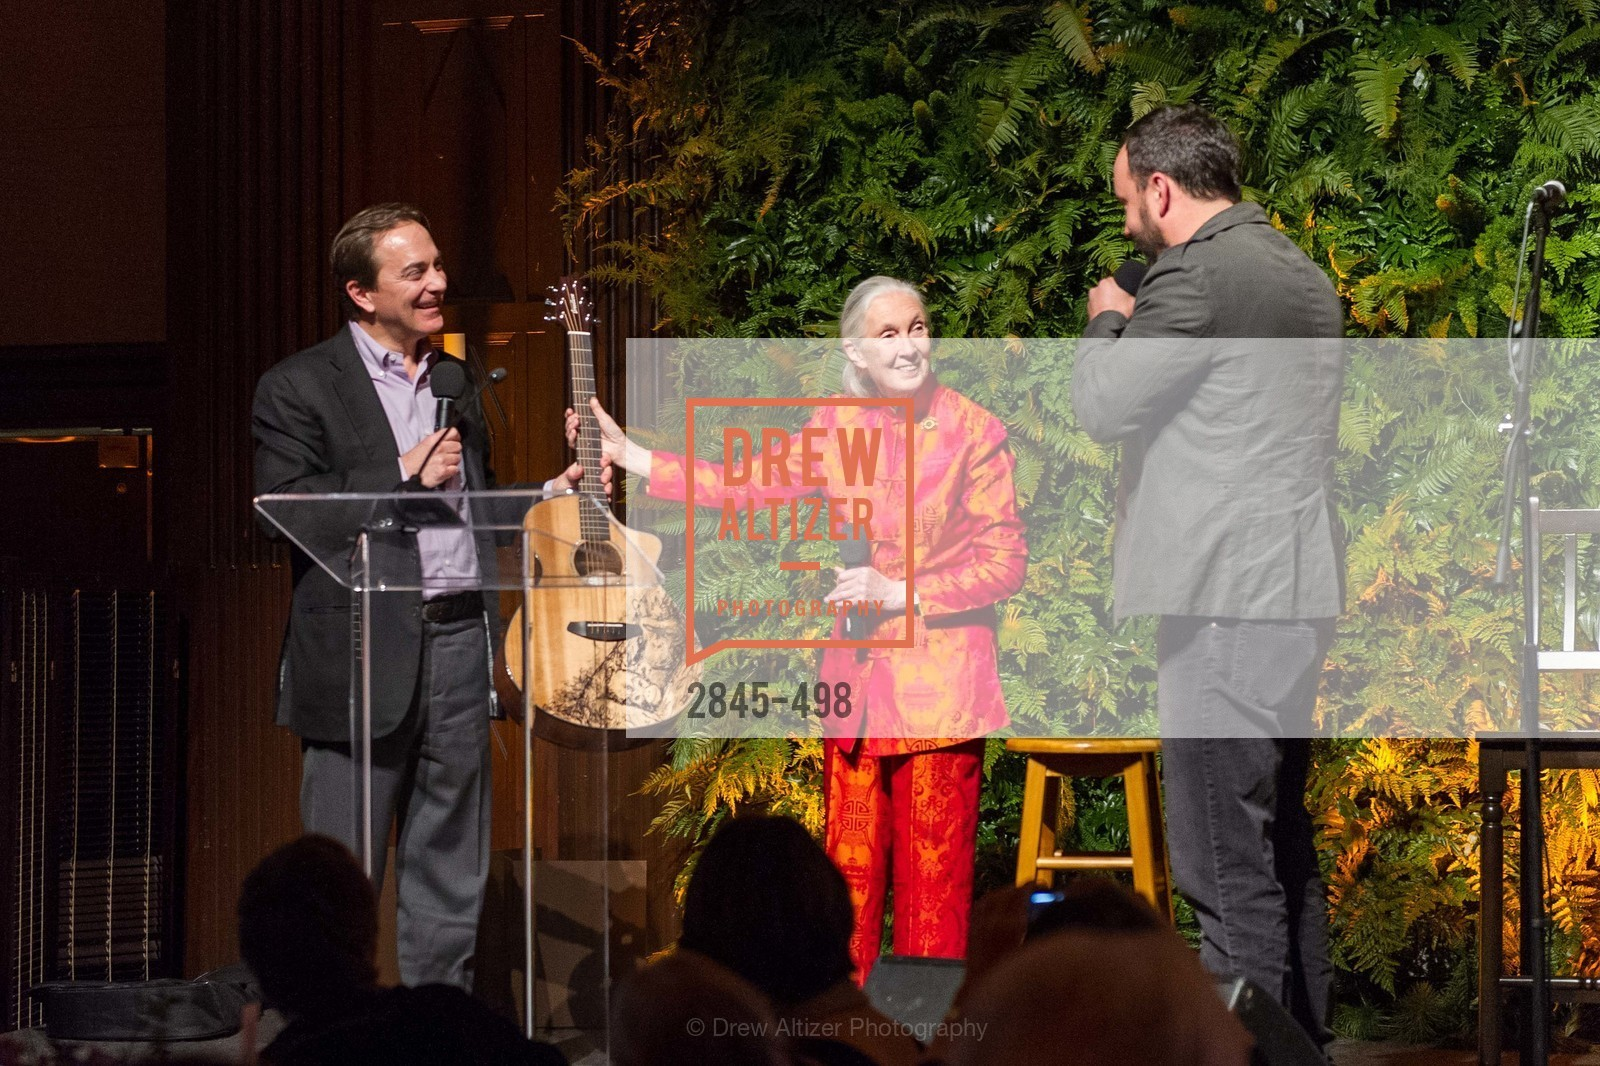 Charlie Knowles, Jane Goodall, Dave Matthews, Dr. Jane Goodall 80th Birthday Celebration, US. US, April 3rd, 2014,Drew Altizer, Drew Altizer Photography, full-service event agency, private events, San Francisco photographer, photographer California